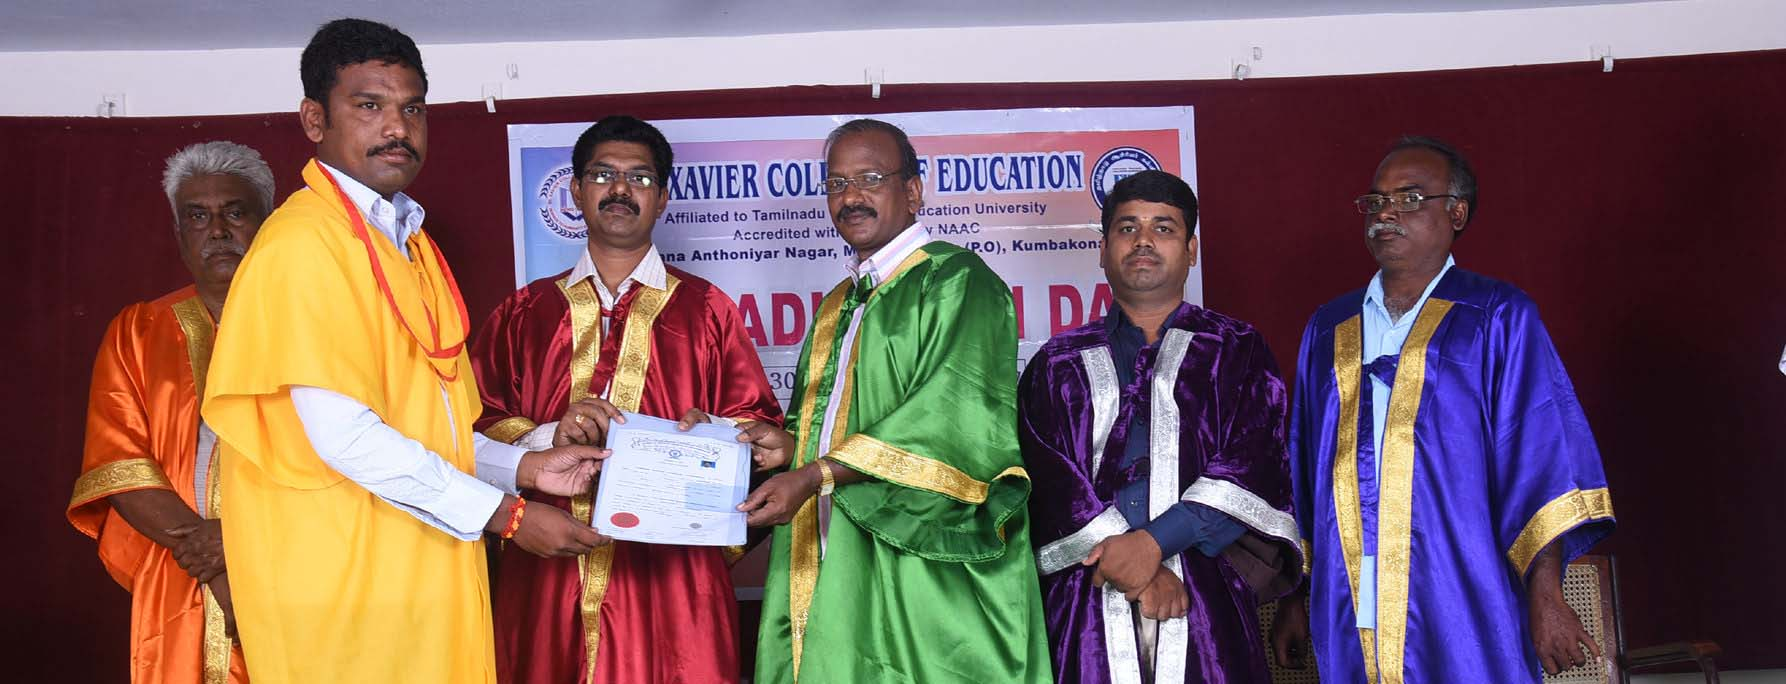 8th Graduation Day – St.Xavier College of Education